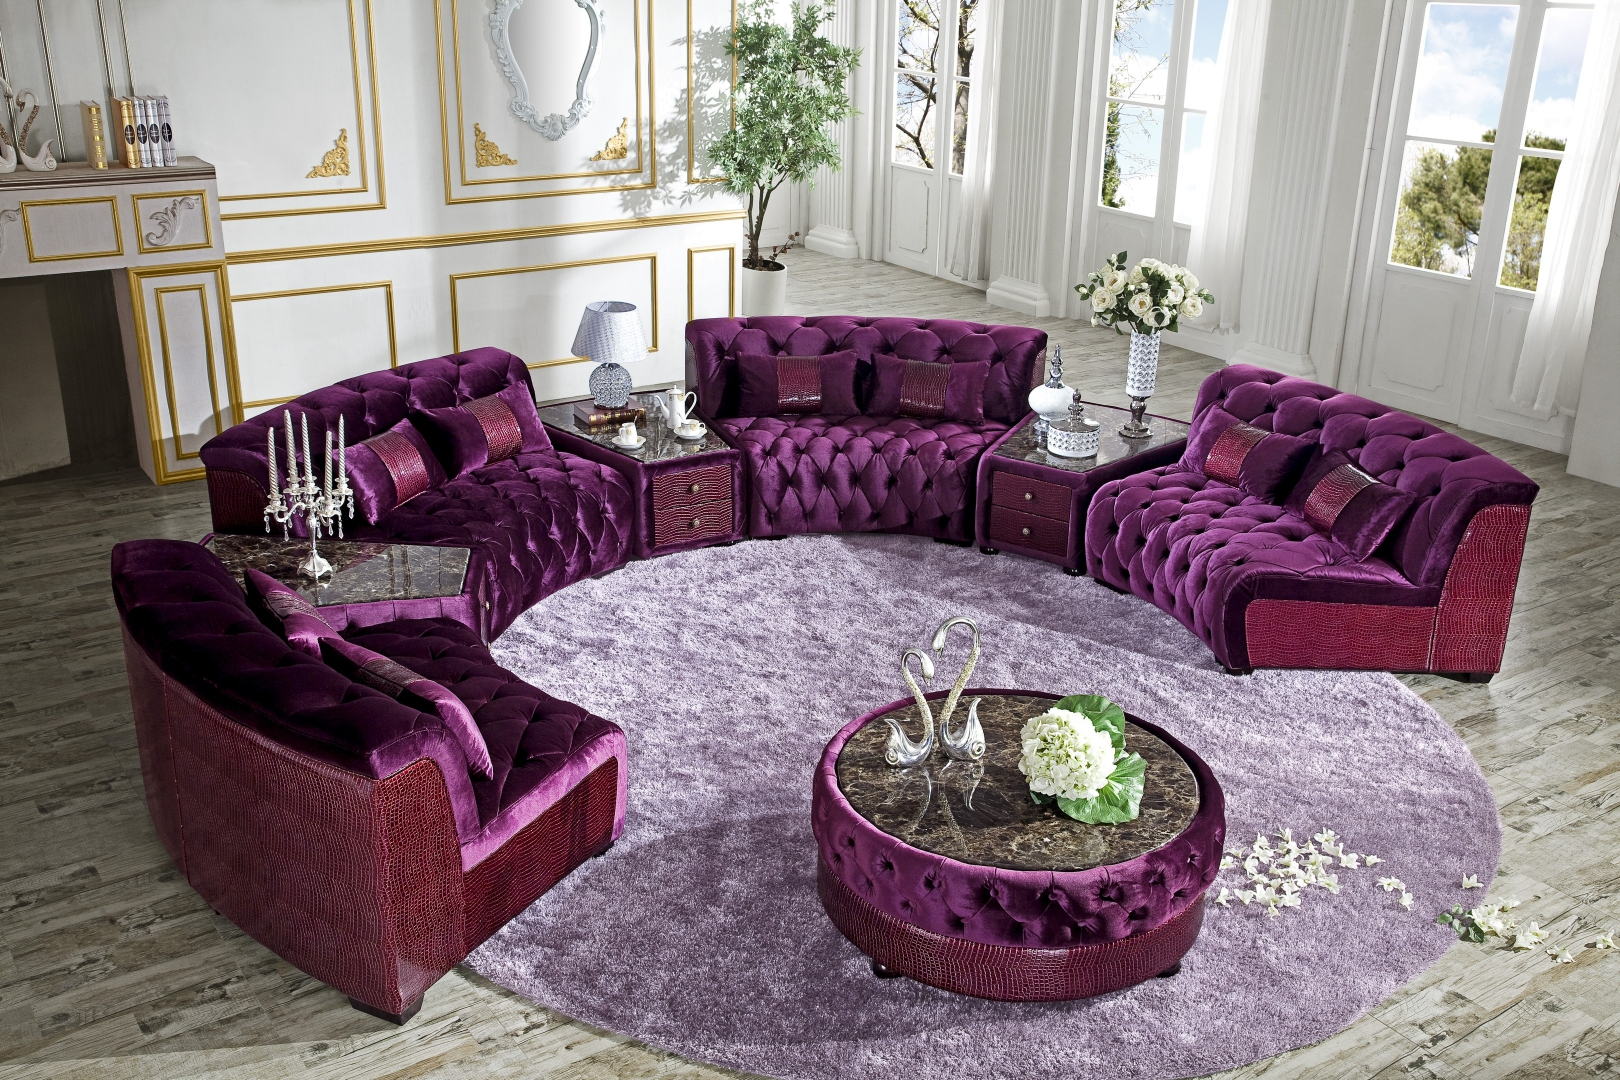 moderne couchgarnitur purple lionsstar gmbh. Black Bedroom Furniture Sets. Home Design Ideas